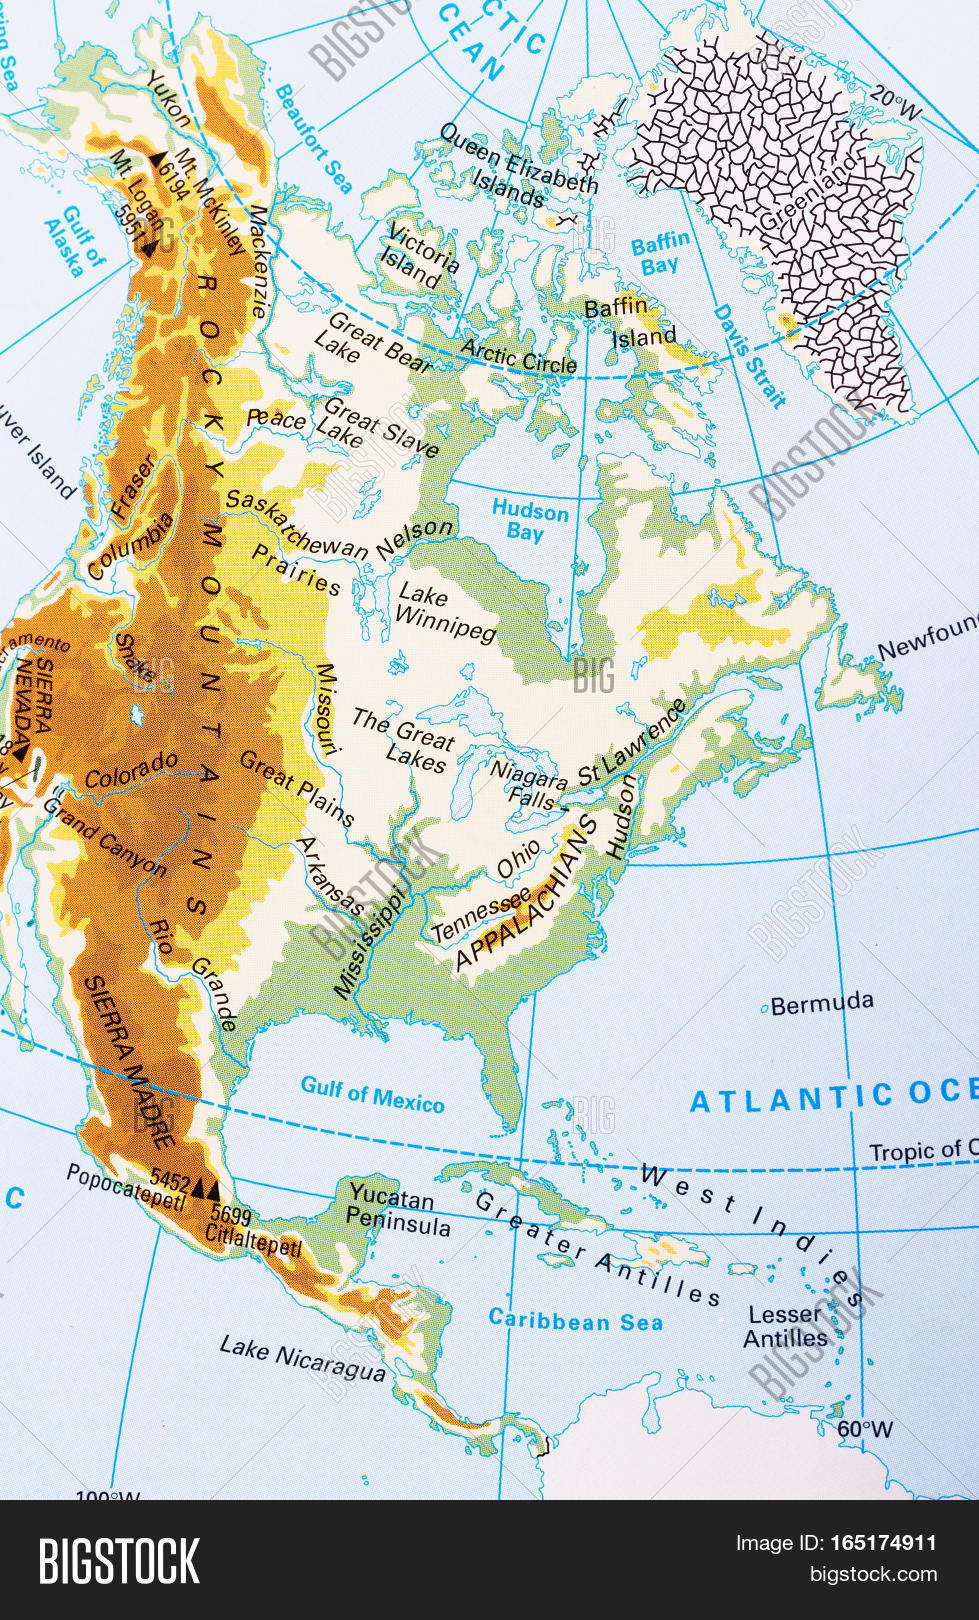 North America Physical Map Labeling Image Photo Bigstock - World physical map labeled